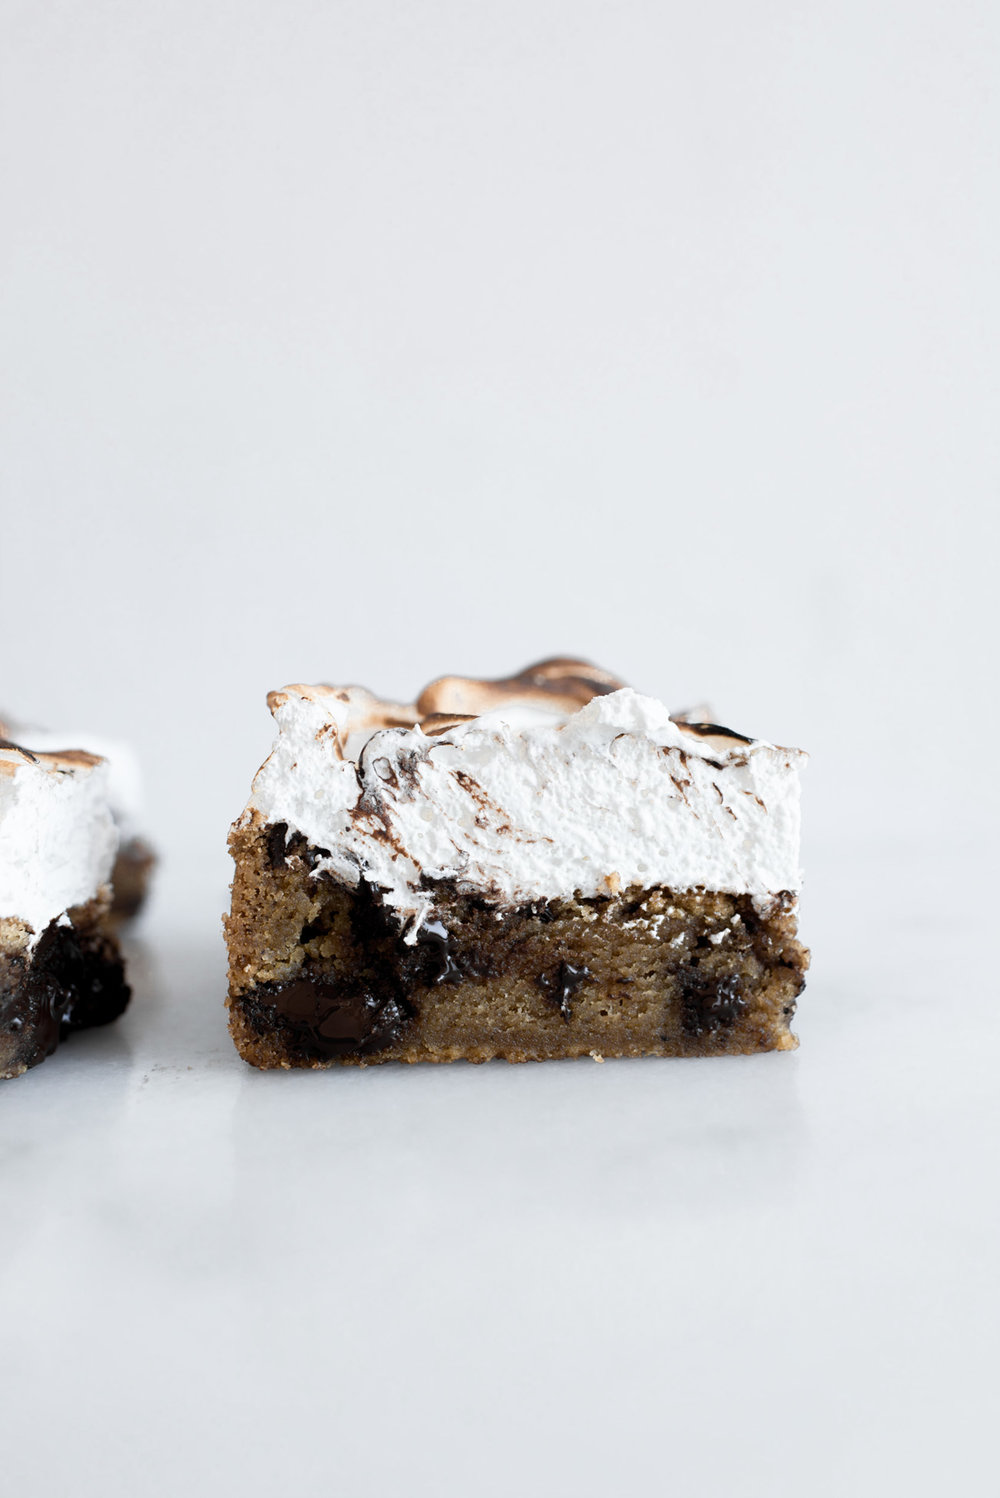 Brown-Butter-Cookie-Meringue-Bars-with-Espresso-Fleur-de-Sel-4.jpg